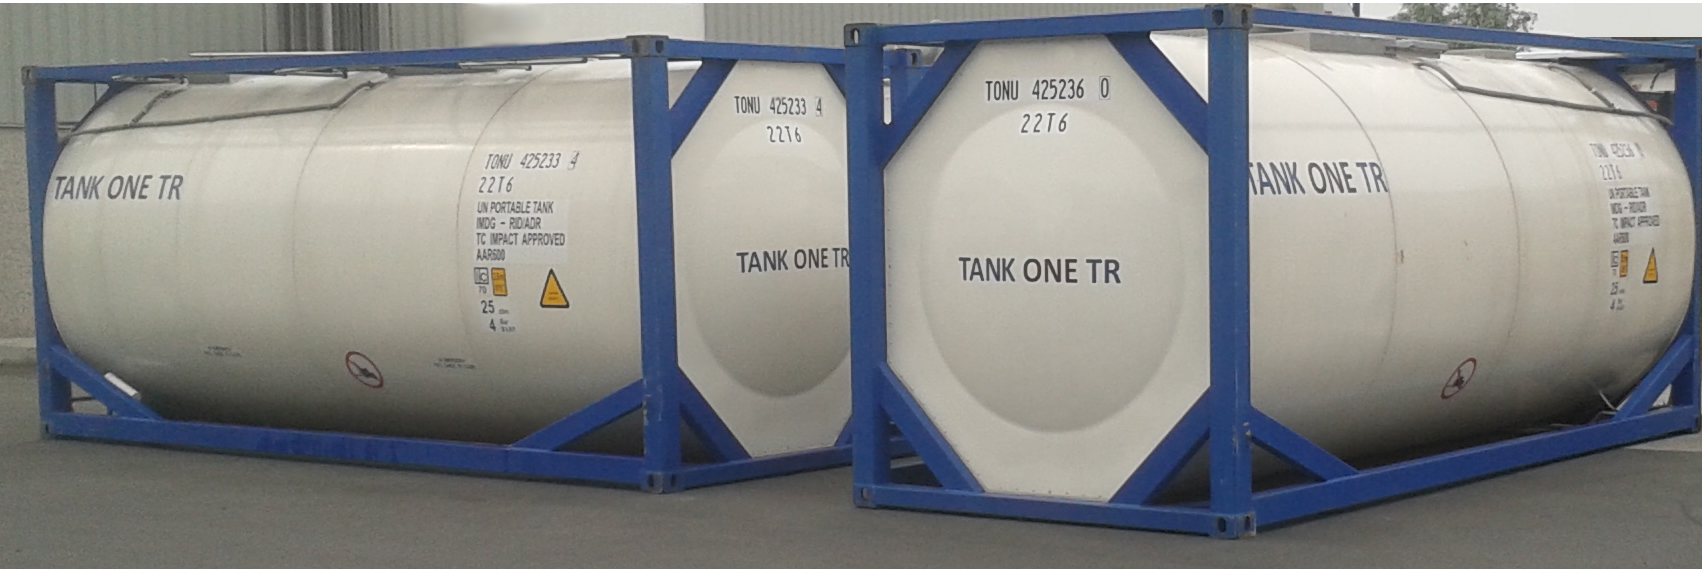 Tank-One T11 Iso Tank Container Lease